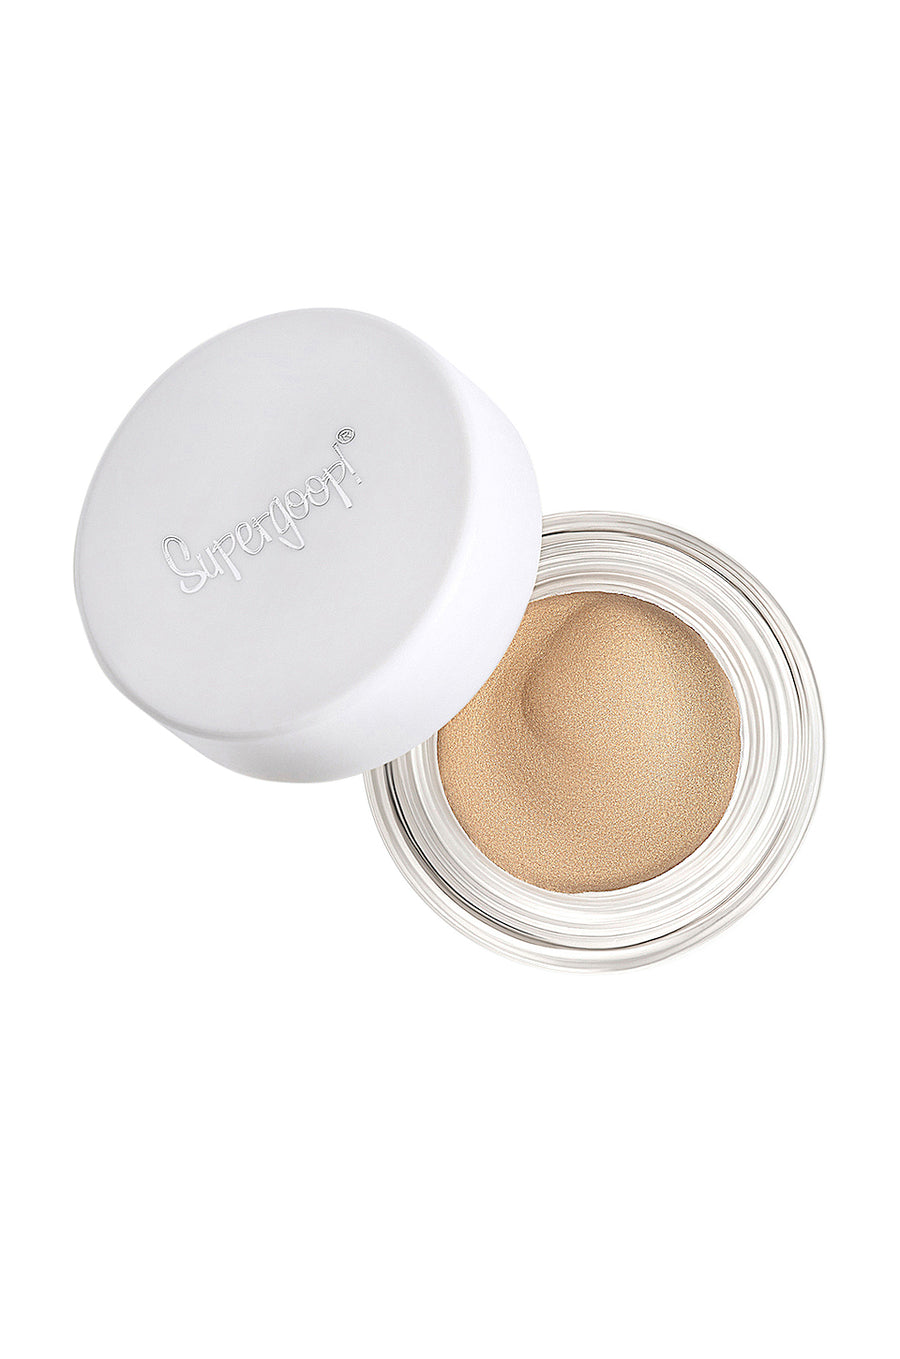 Shimmer Shade SPF 30 First Light, 0.18 oz.